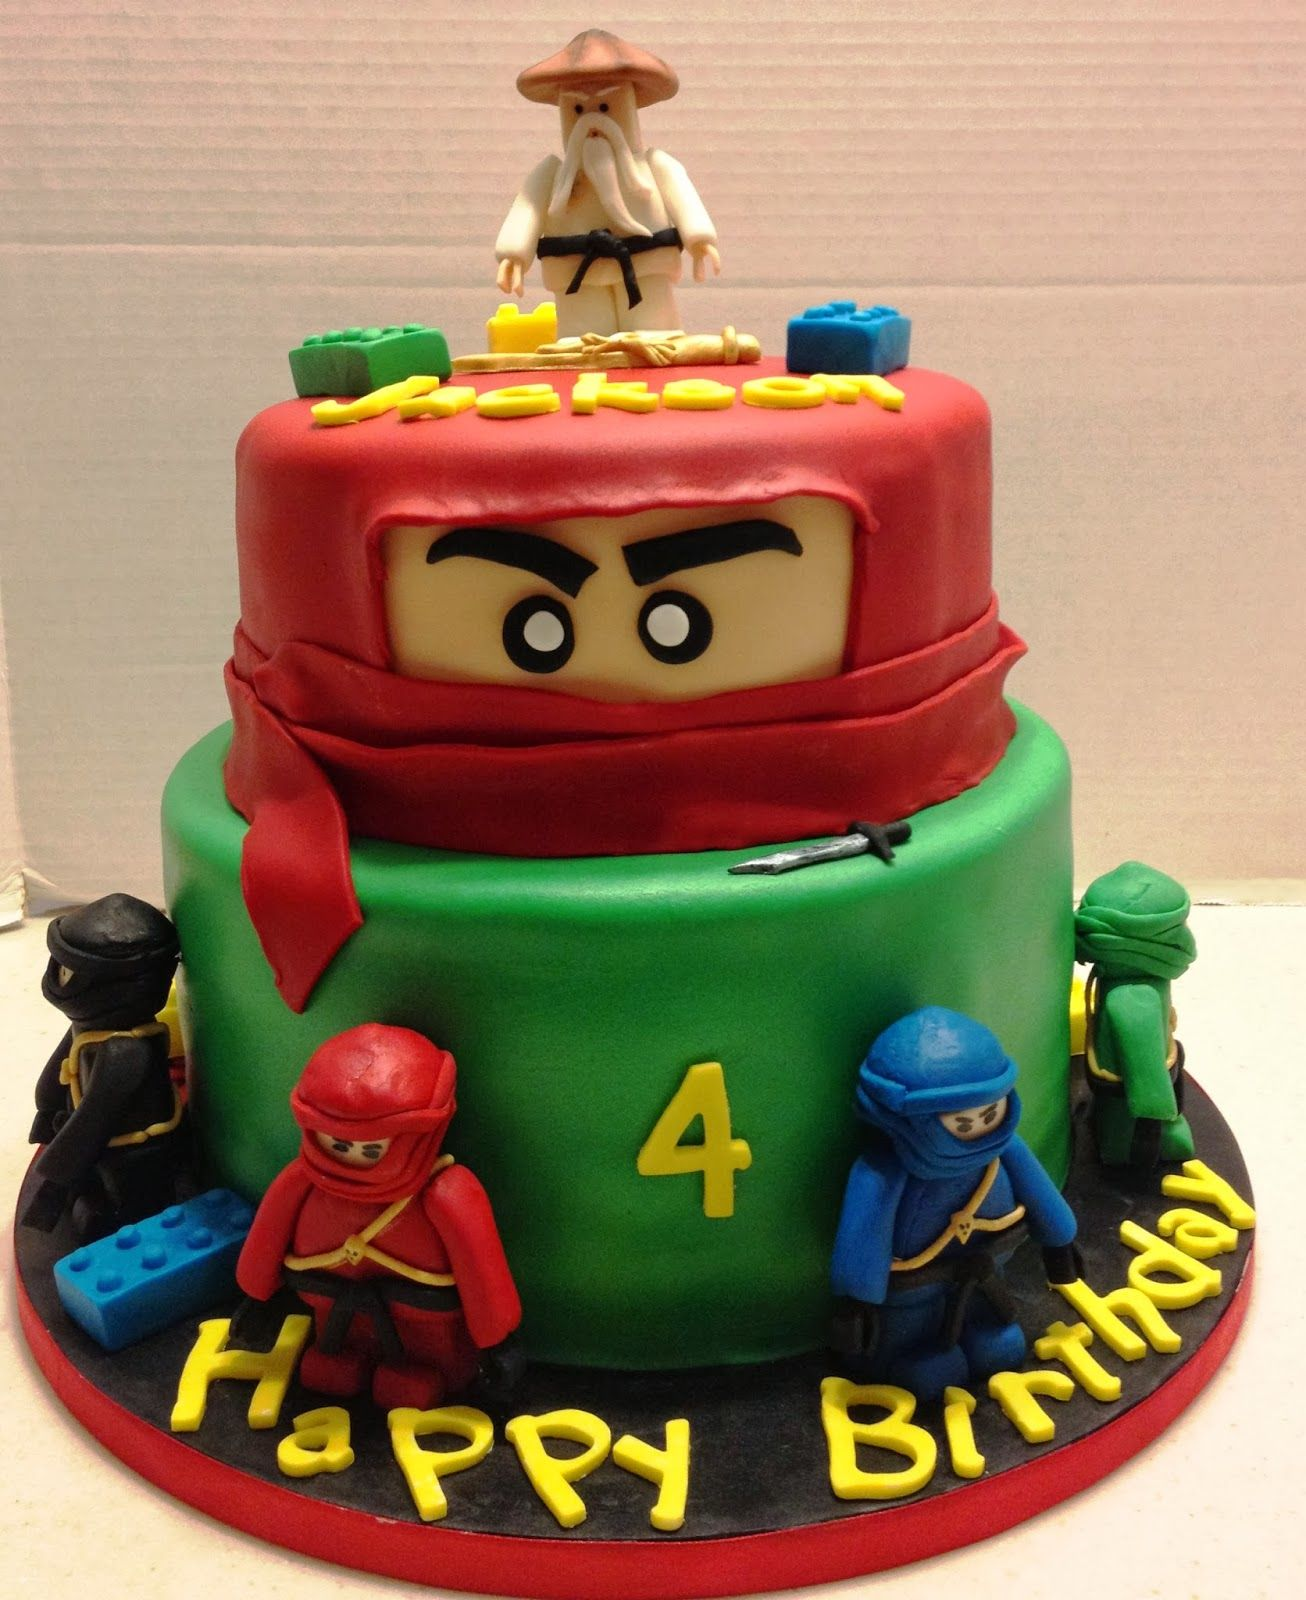 Superb Jacksons Lego Ninjago Birthday Lego Birthday Cake Ninjago Cakes Funny Birthday Cards Online Inifofree Goldxyz